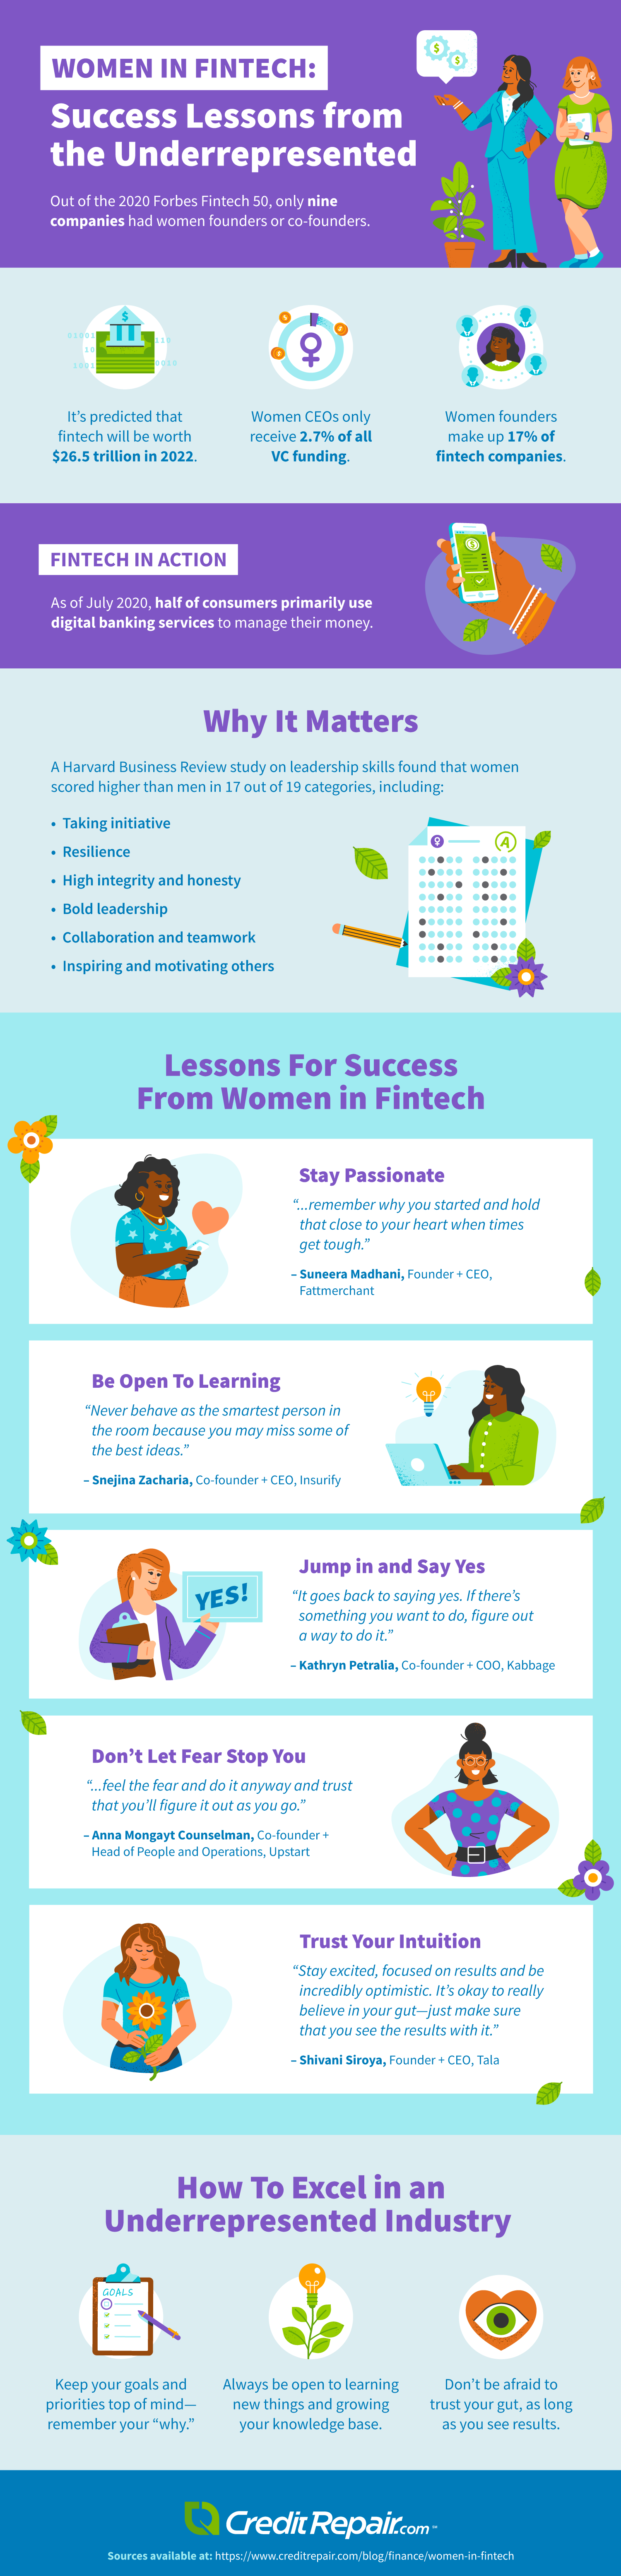 Women in Fintech infographic